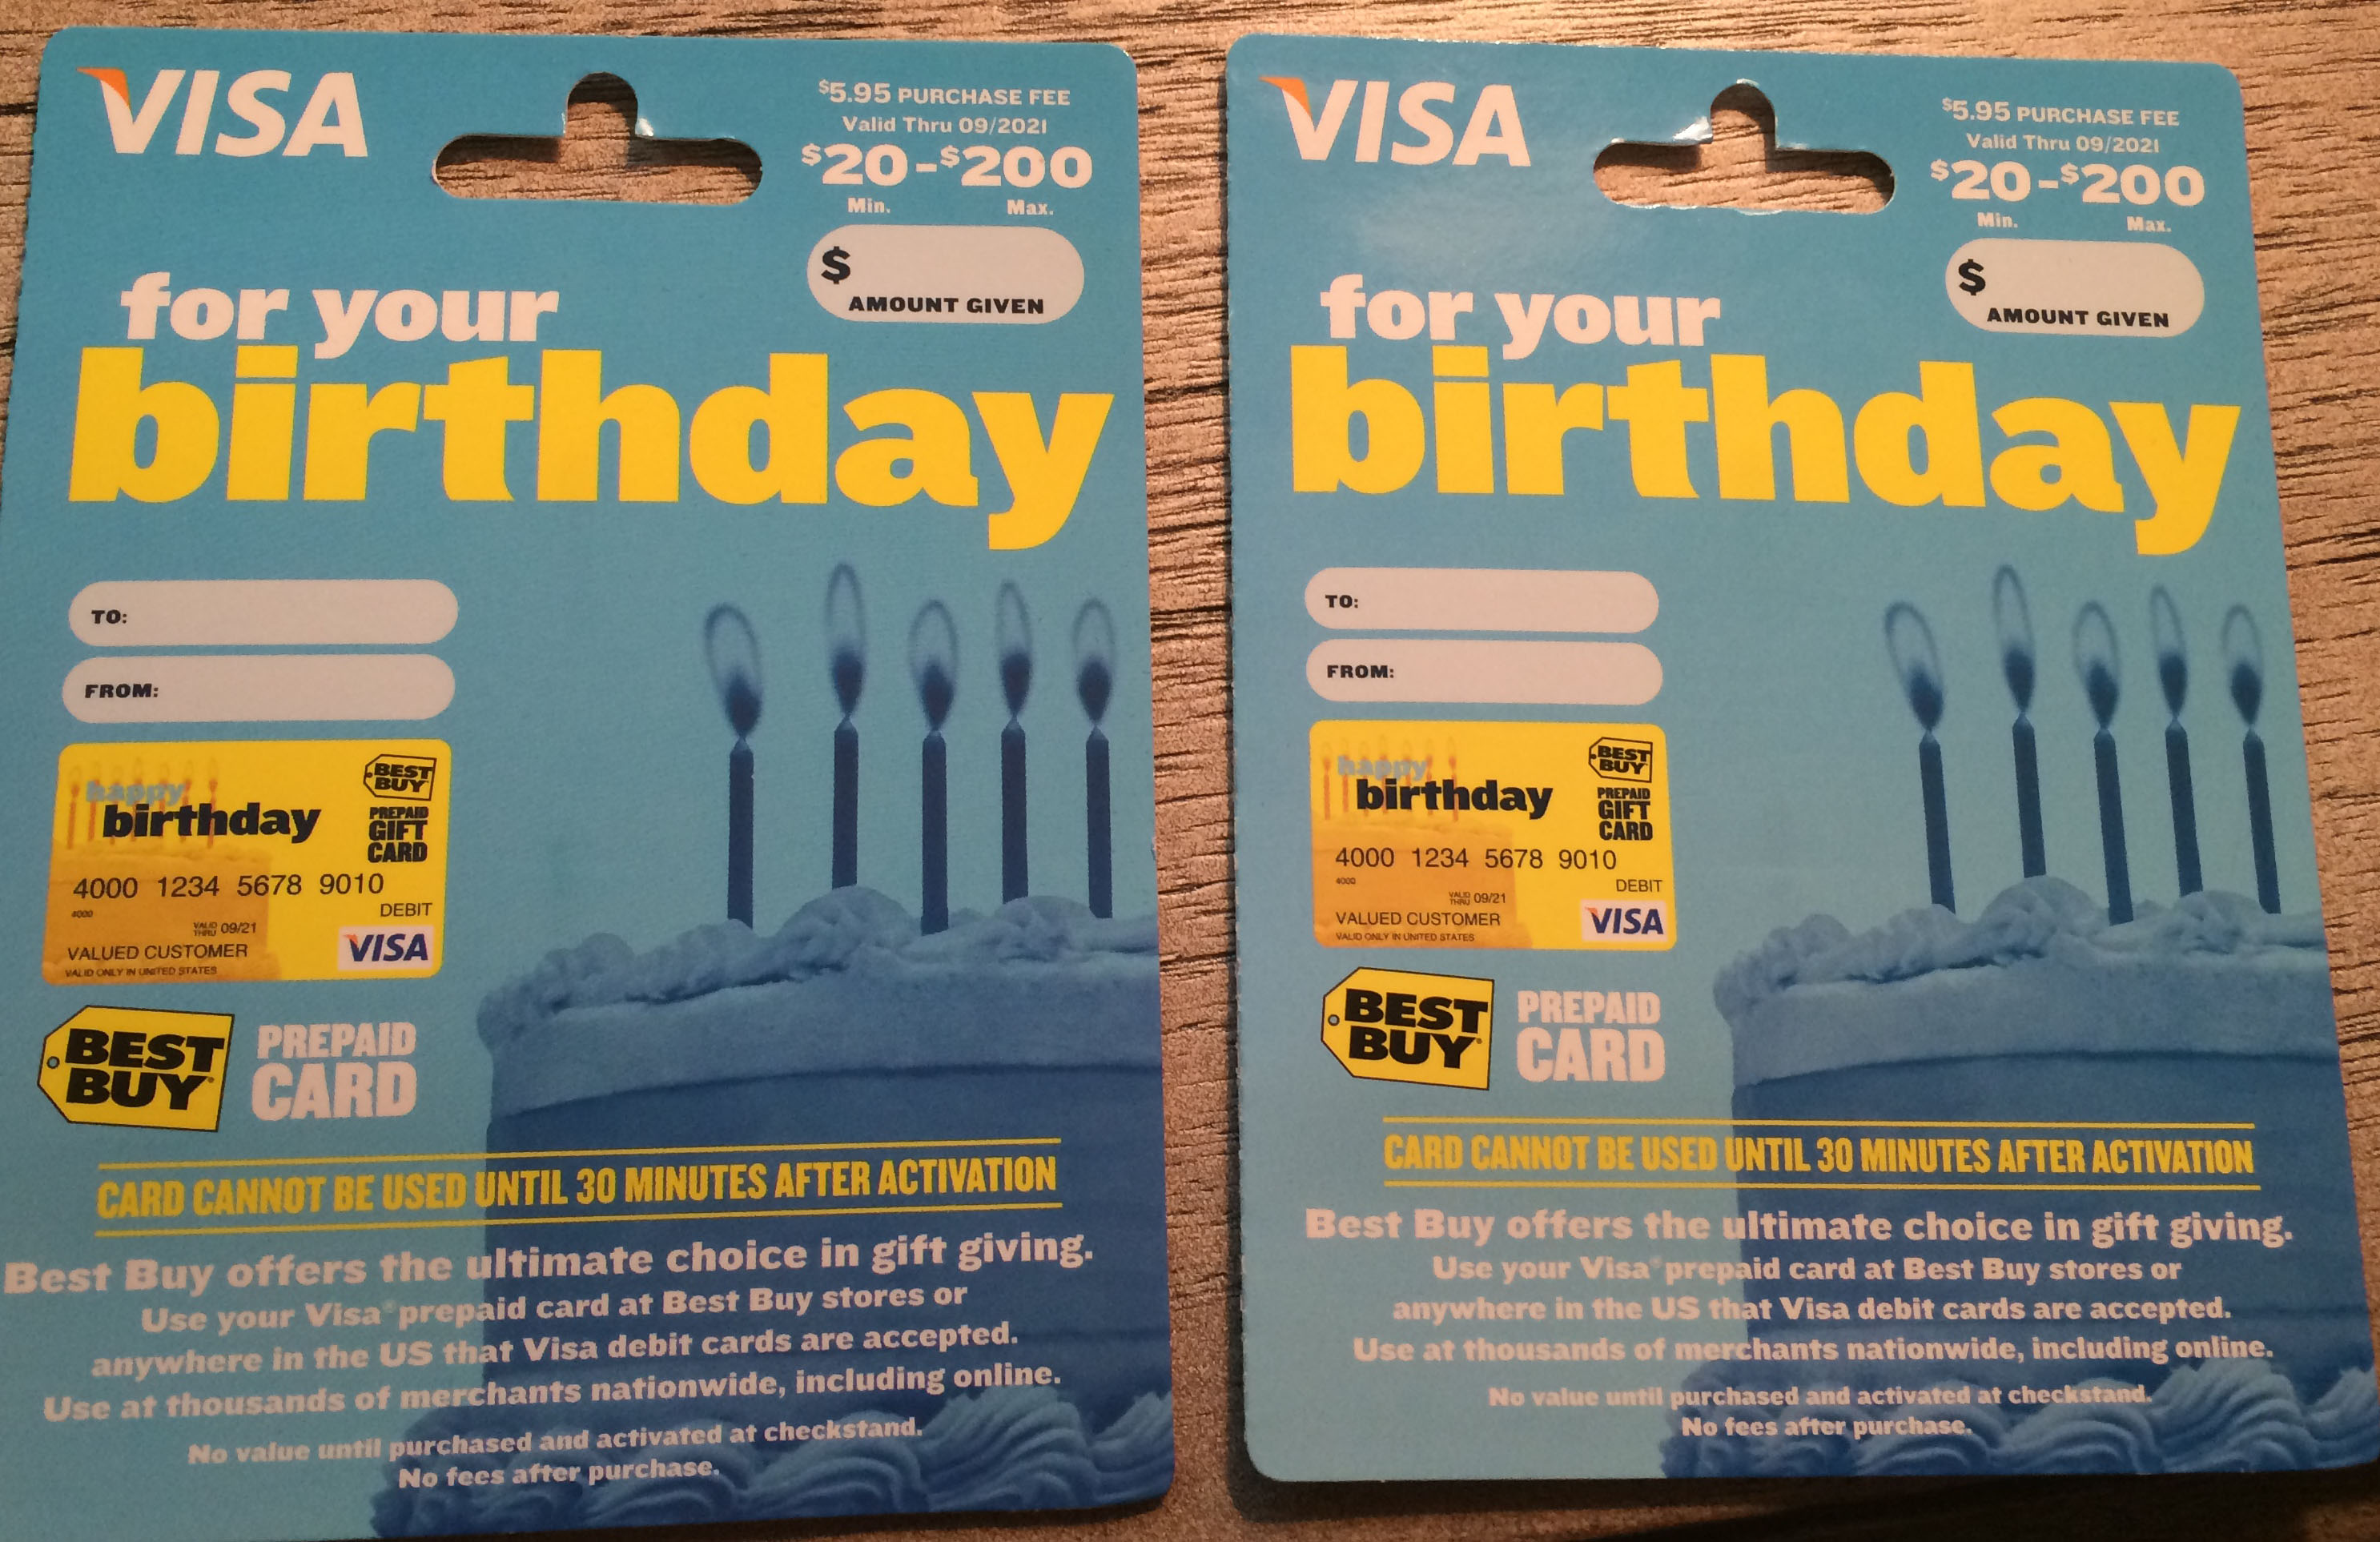 best buy gift cards - Buy Visa Gift Card With Credit Card